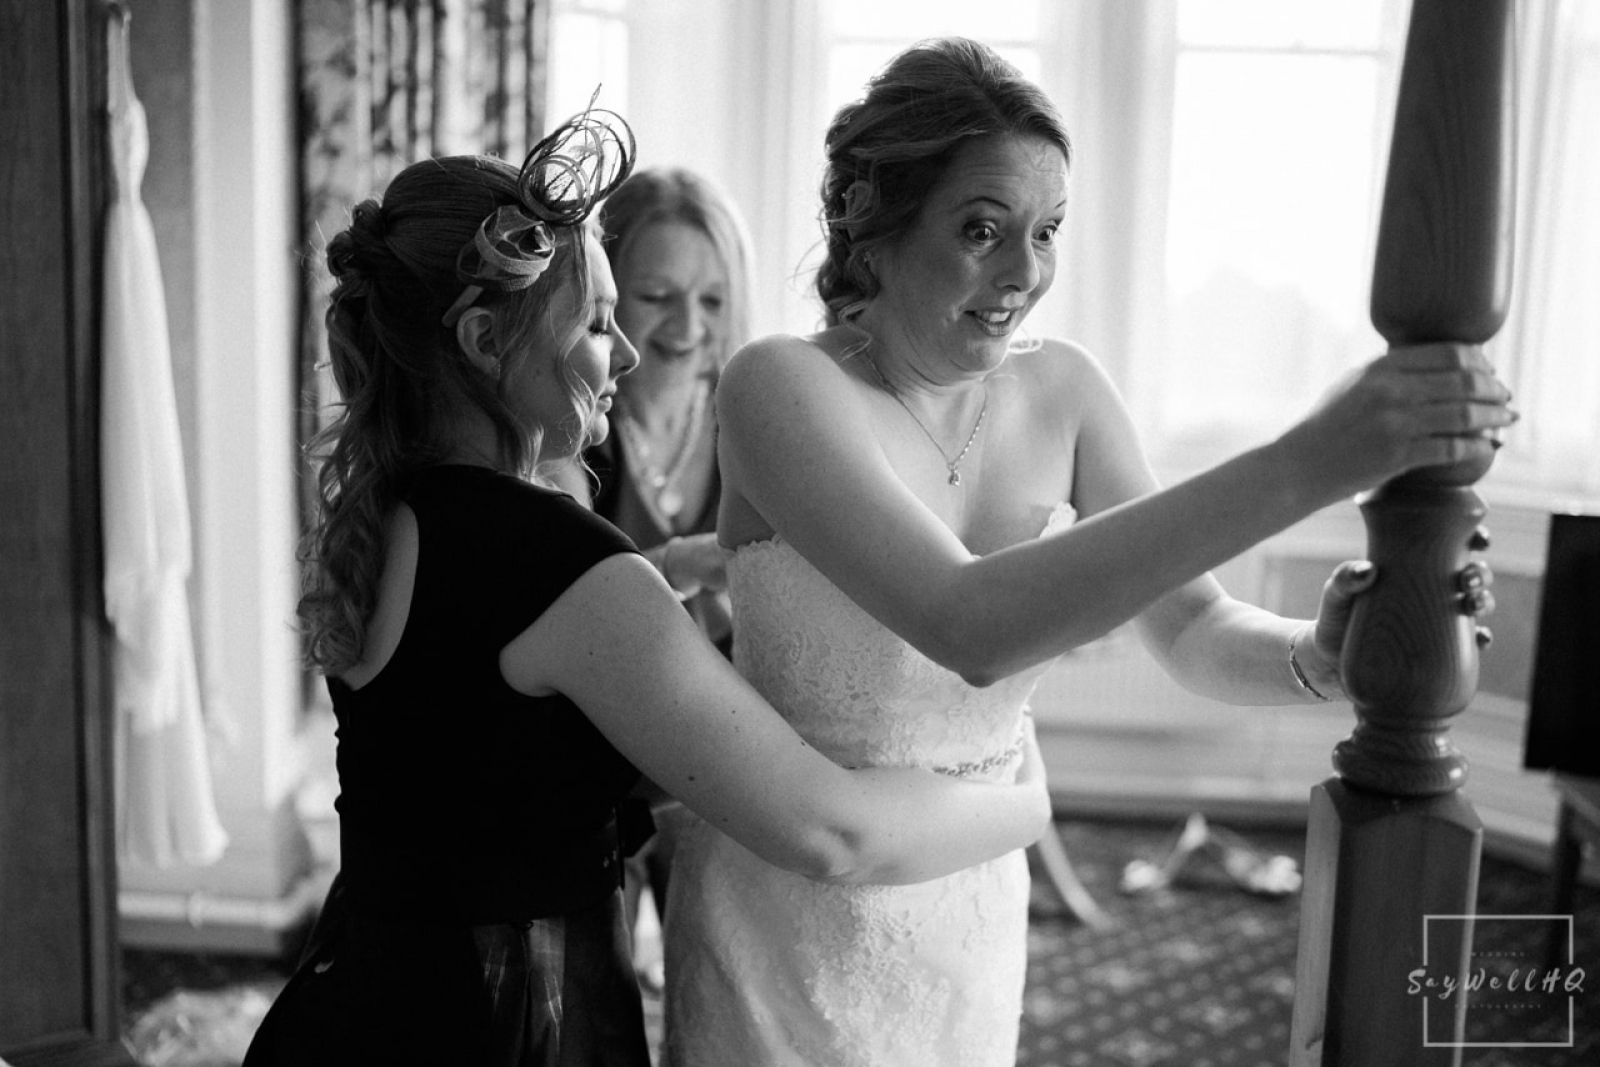 bestwood-lodge-wedding-photography-bride-getting-help-getting-in-to-her-wedding-dress-on-the-day-of-her-wedding